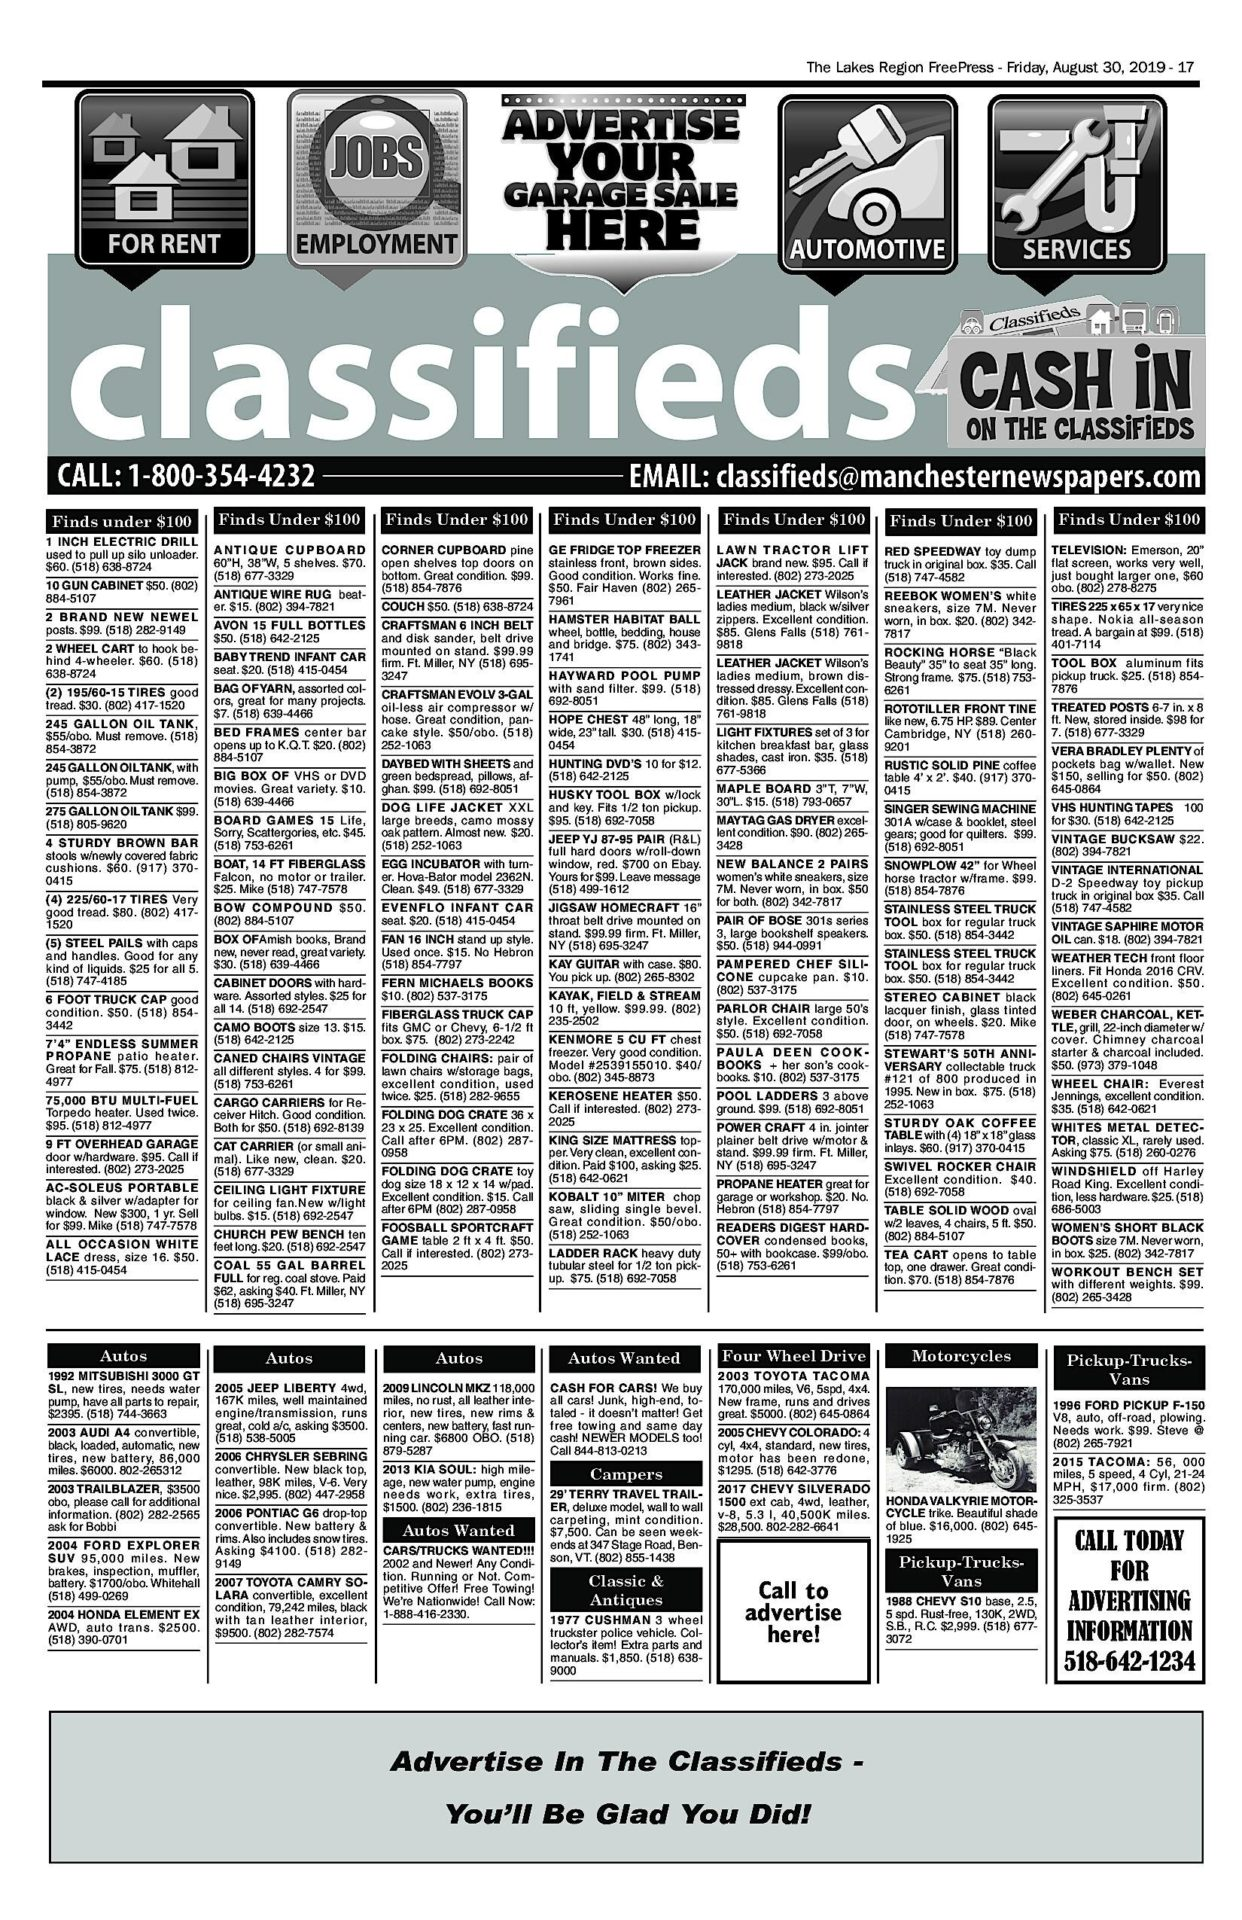 Lakes Classifieds – 08/30/19